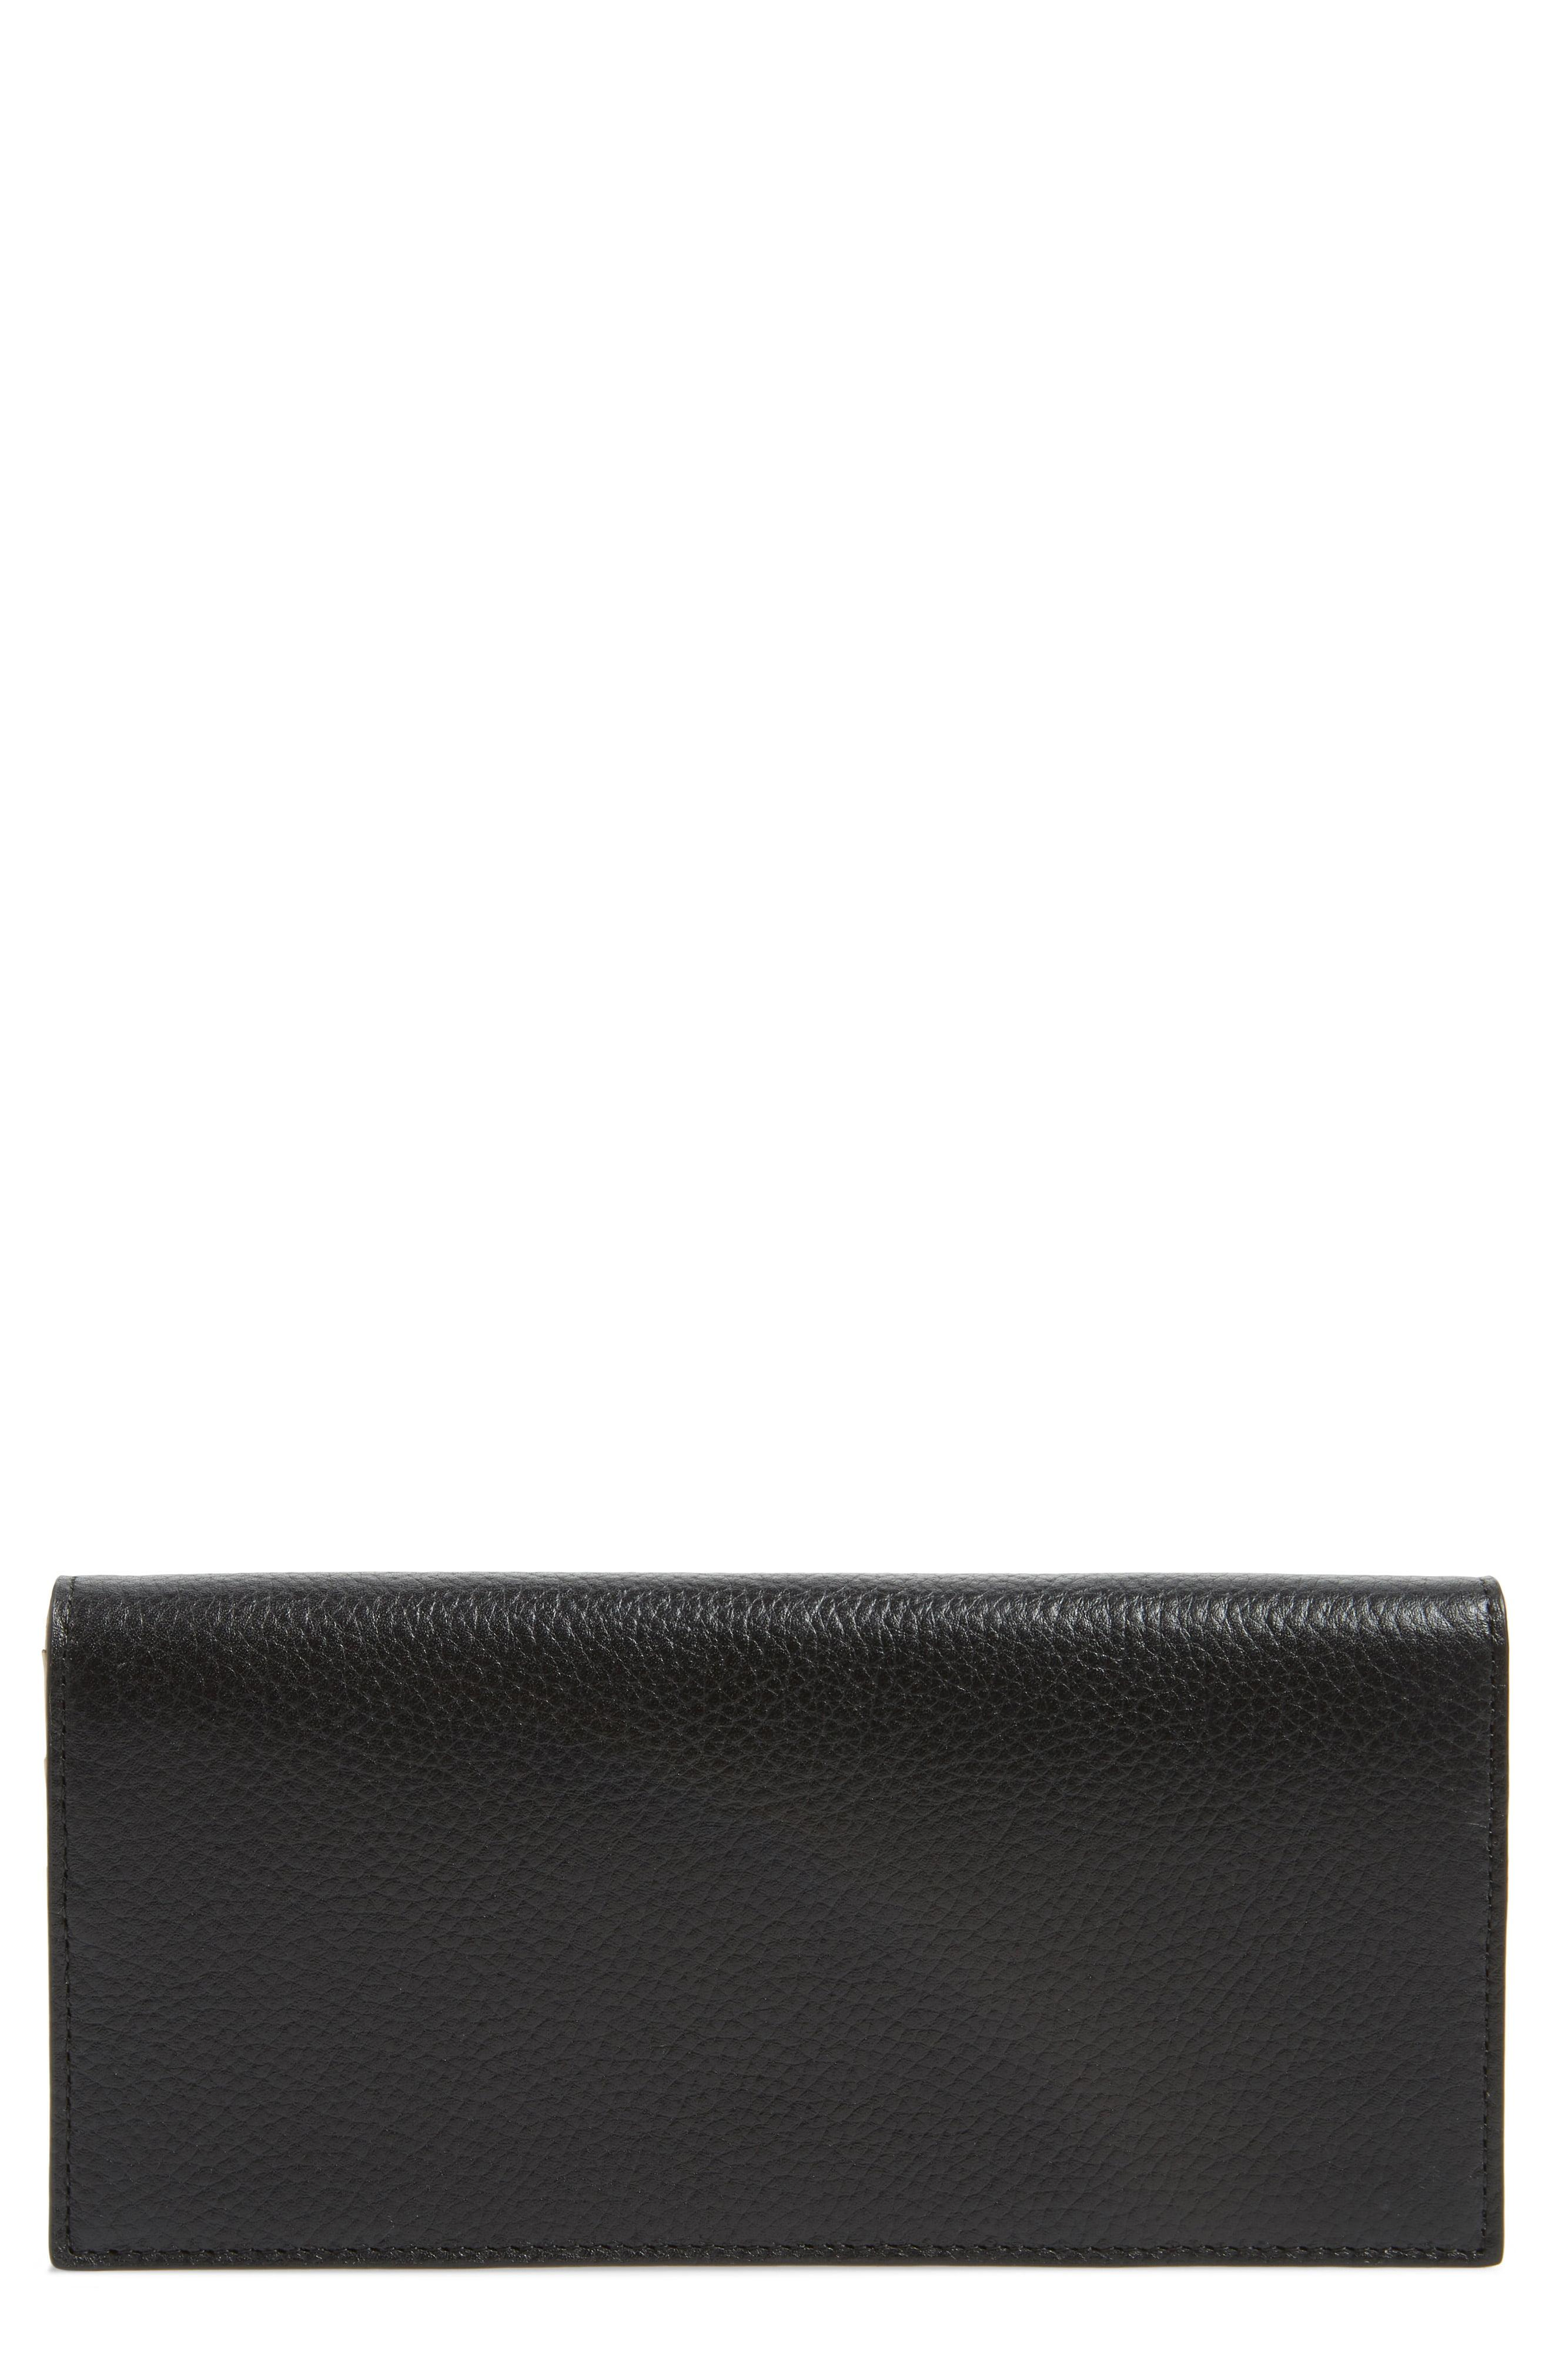 dc23a49a6d8819 Lyst - Nordstrom Hunter Leather Continental Wallet in Black